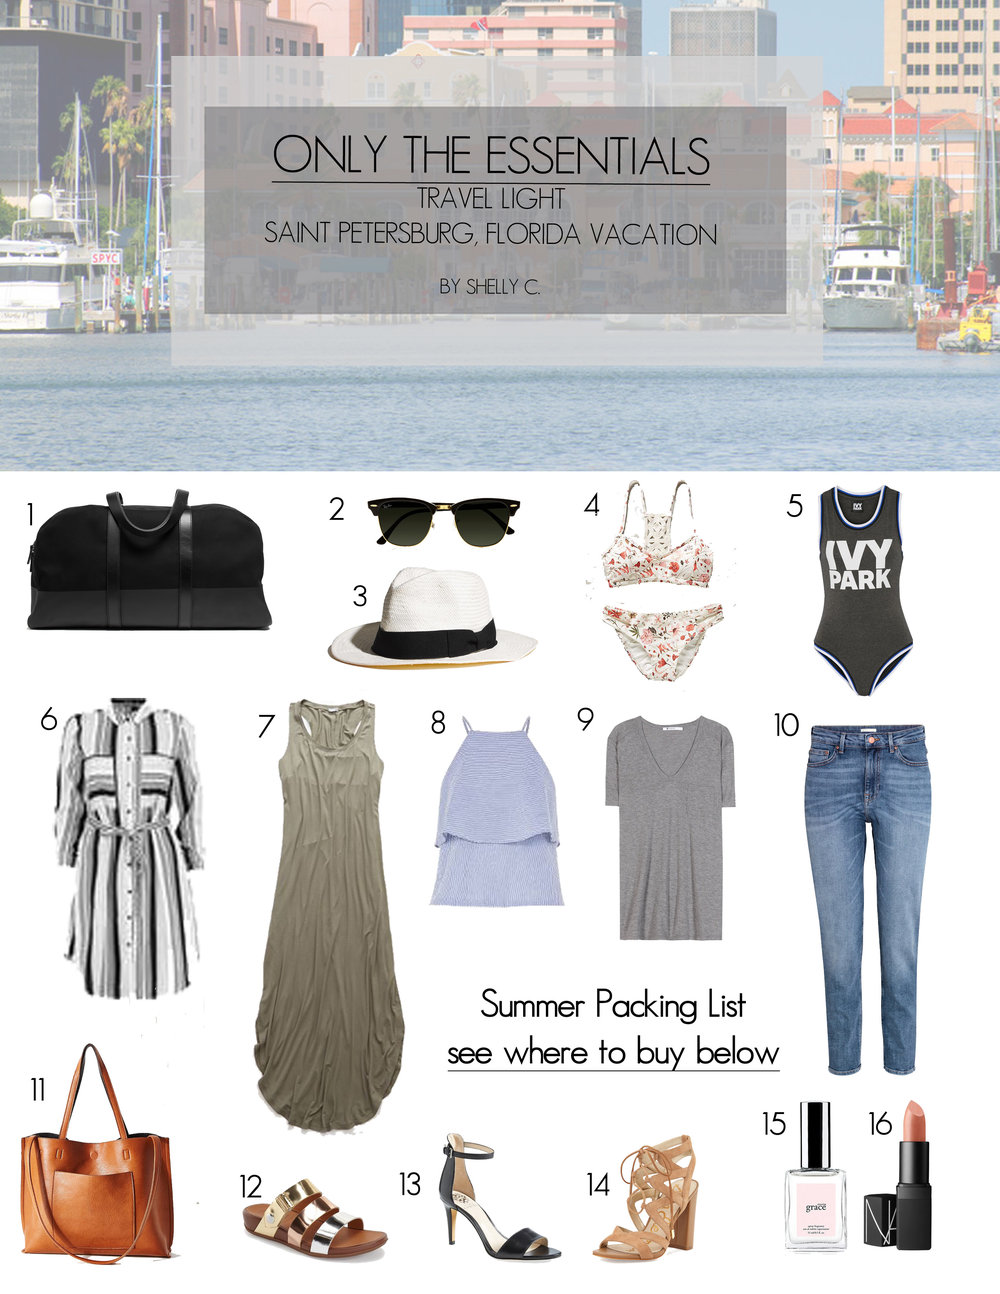 BUY HERE:: 1.  EVERLANE  2.  RAY-BAN  3.  MADEWELL  4.  L*SPACE  5.  NET-A-PORTER  6.  BOOHOO  7.  AMERICAN EAGLE  8.  SHOPBOP  9. ALEXANDER WANG  10.  H&M  11.  URBAN OUTFITTERS  12.  NORDSTROM  13.  VINCE CAMUTO  14.  SAM EDELMAN  15.  PHILOSOPHY   16.  NARS